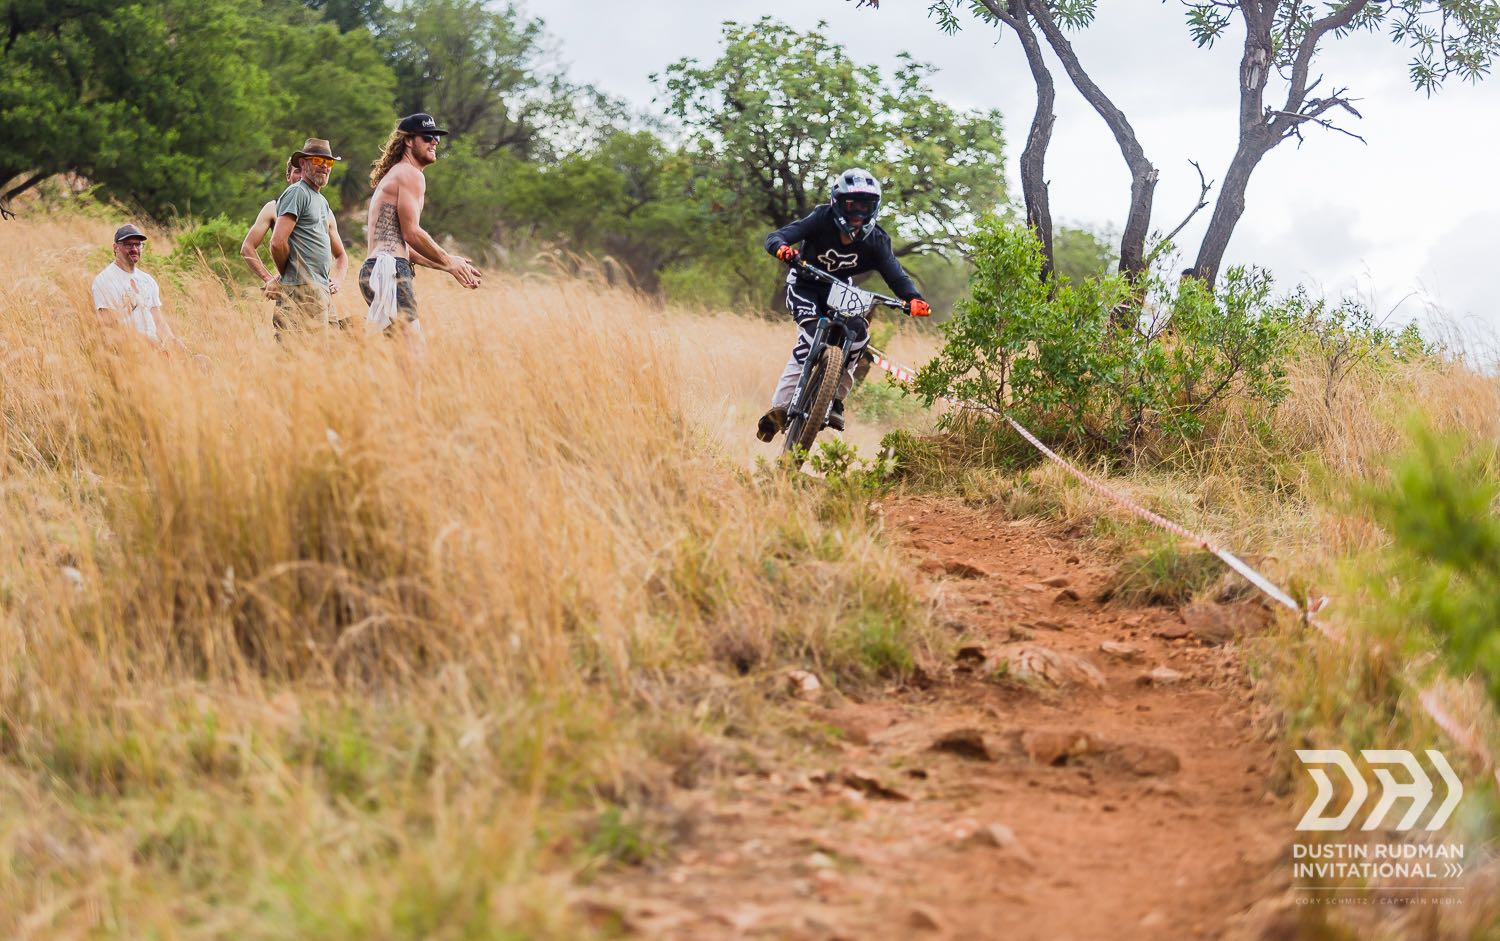 Enduro MTB action from the Dustin Rudman Invitational